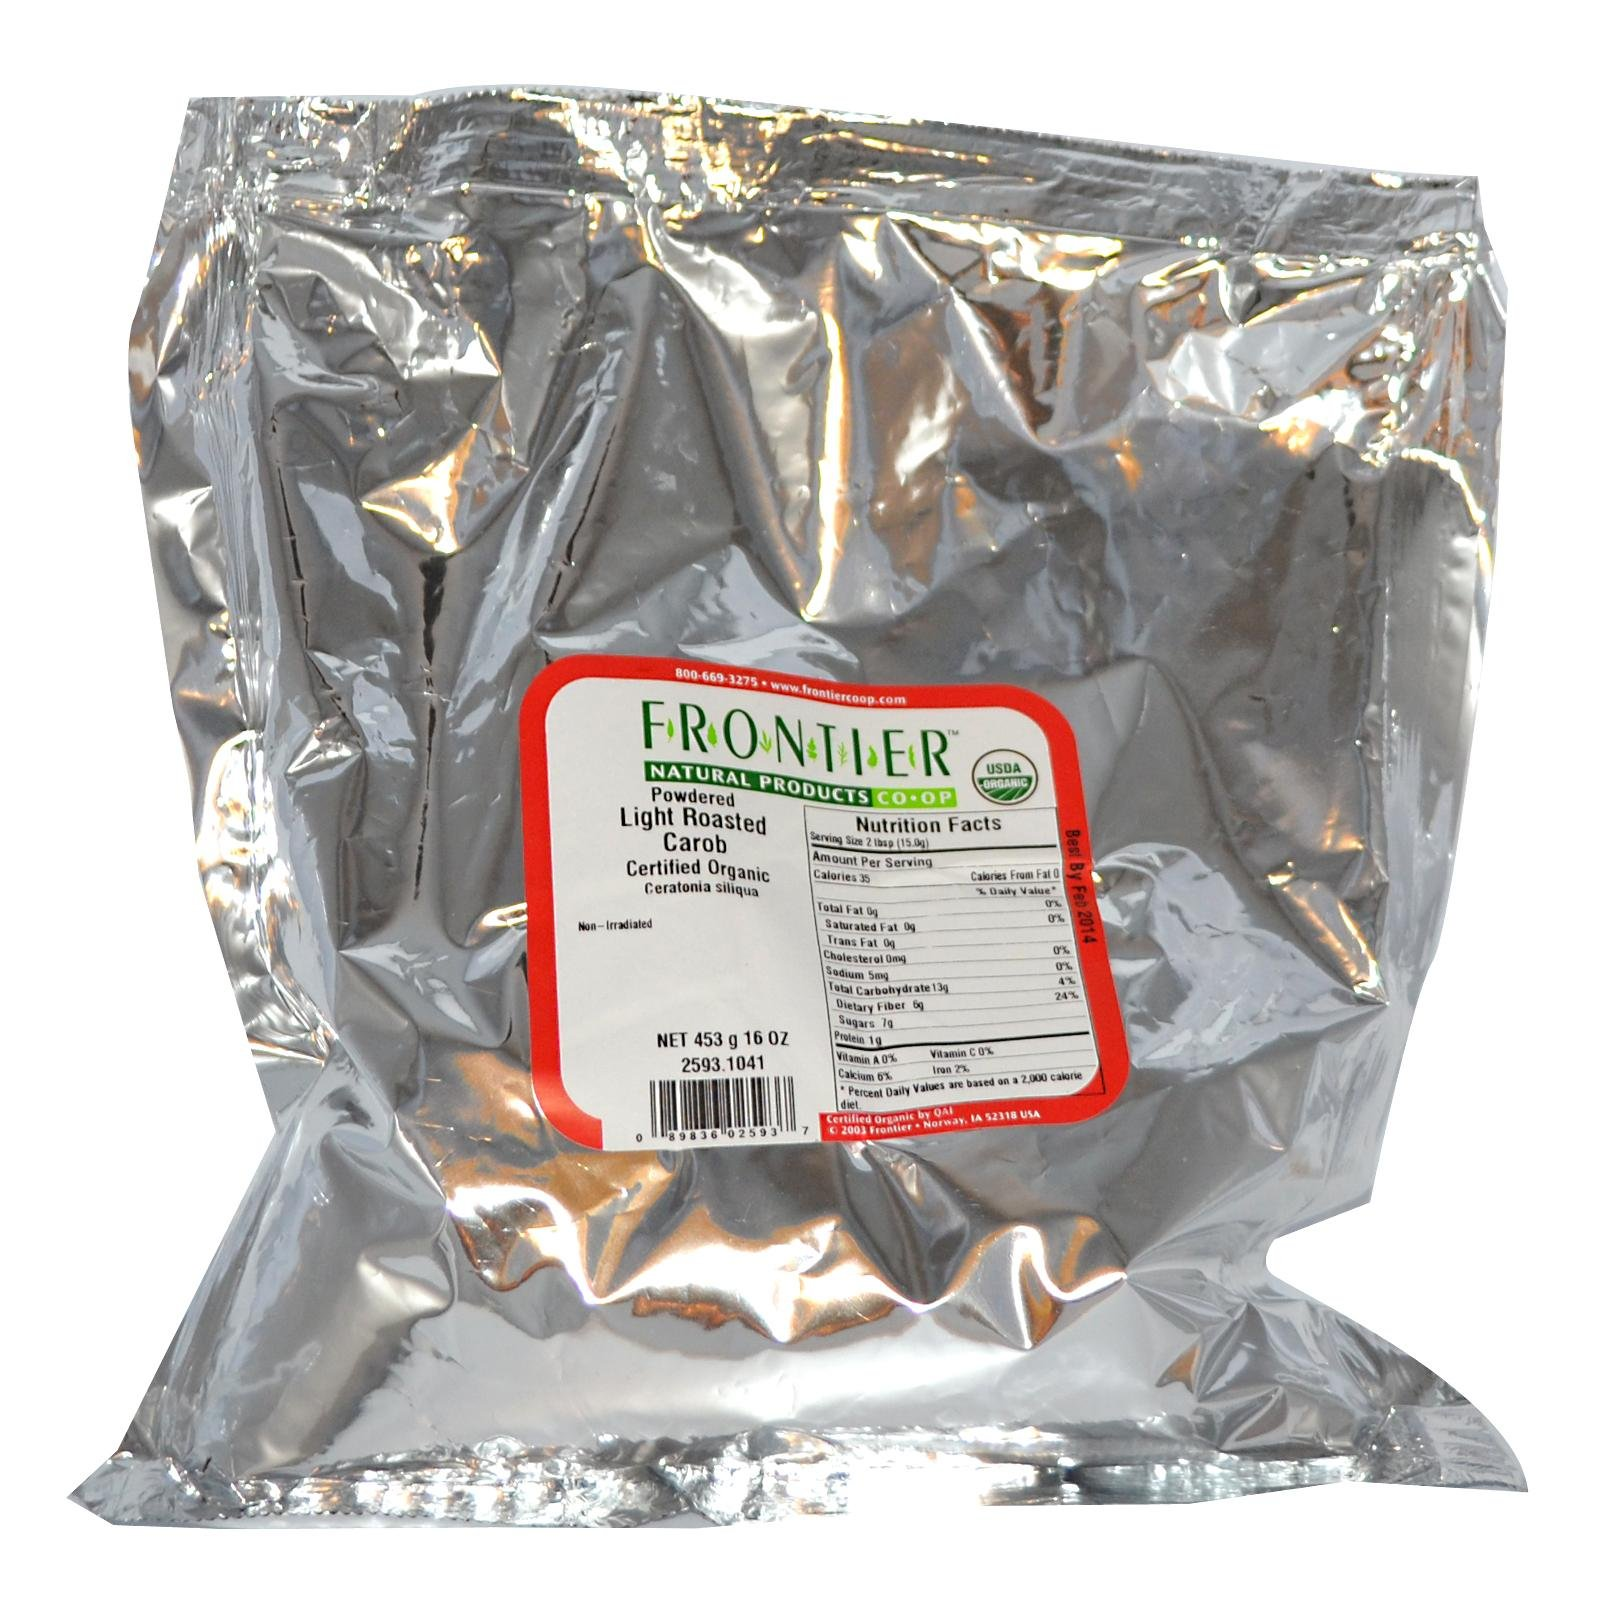 Organic Powdered Light Roasted Carob 16 Ounce (453 grams) Pkg by Frontier